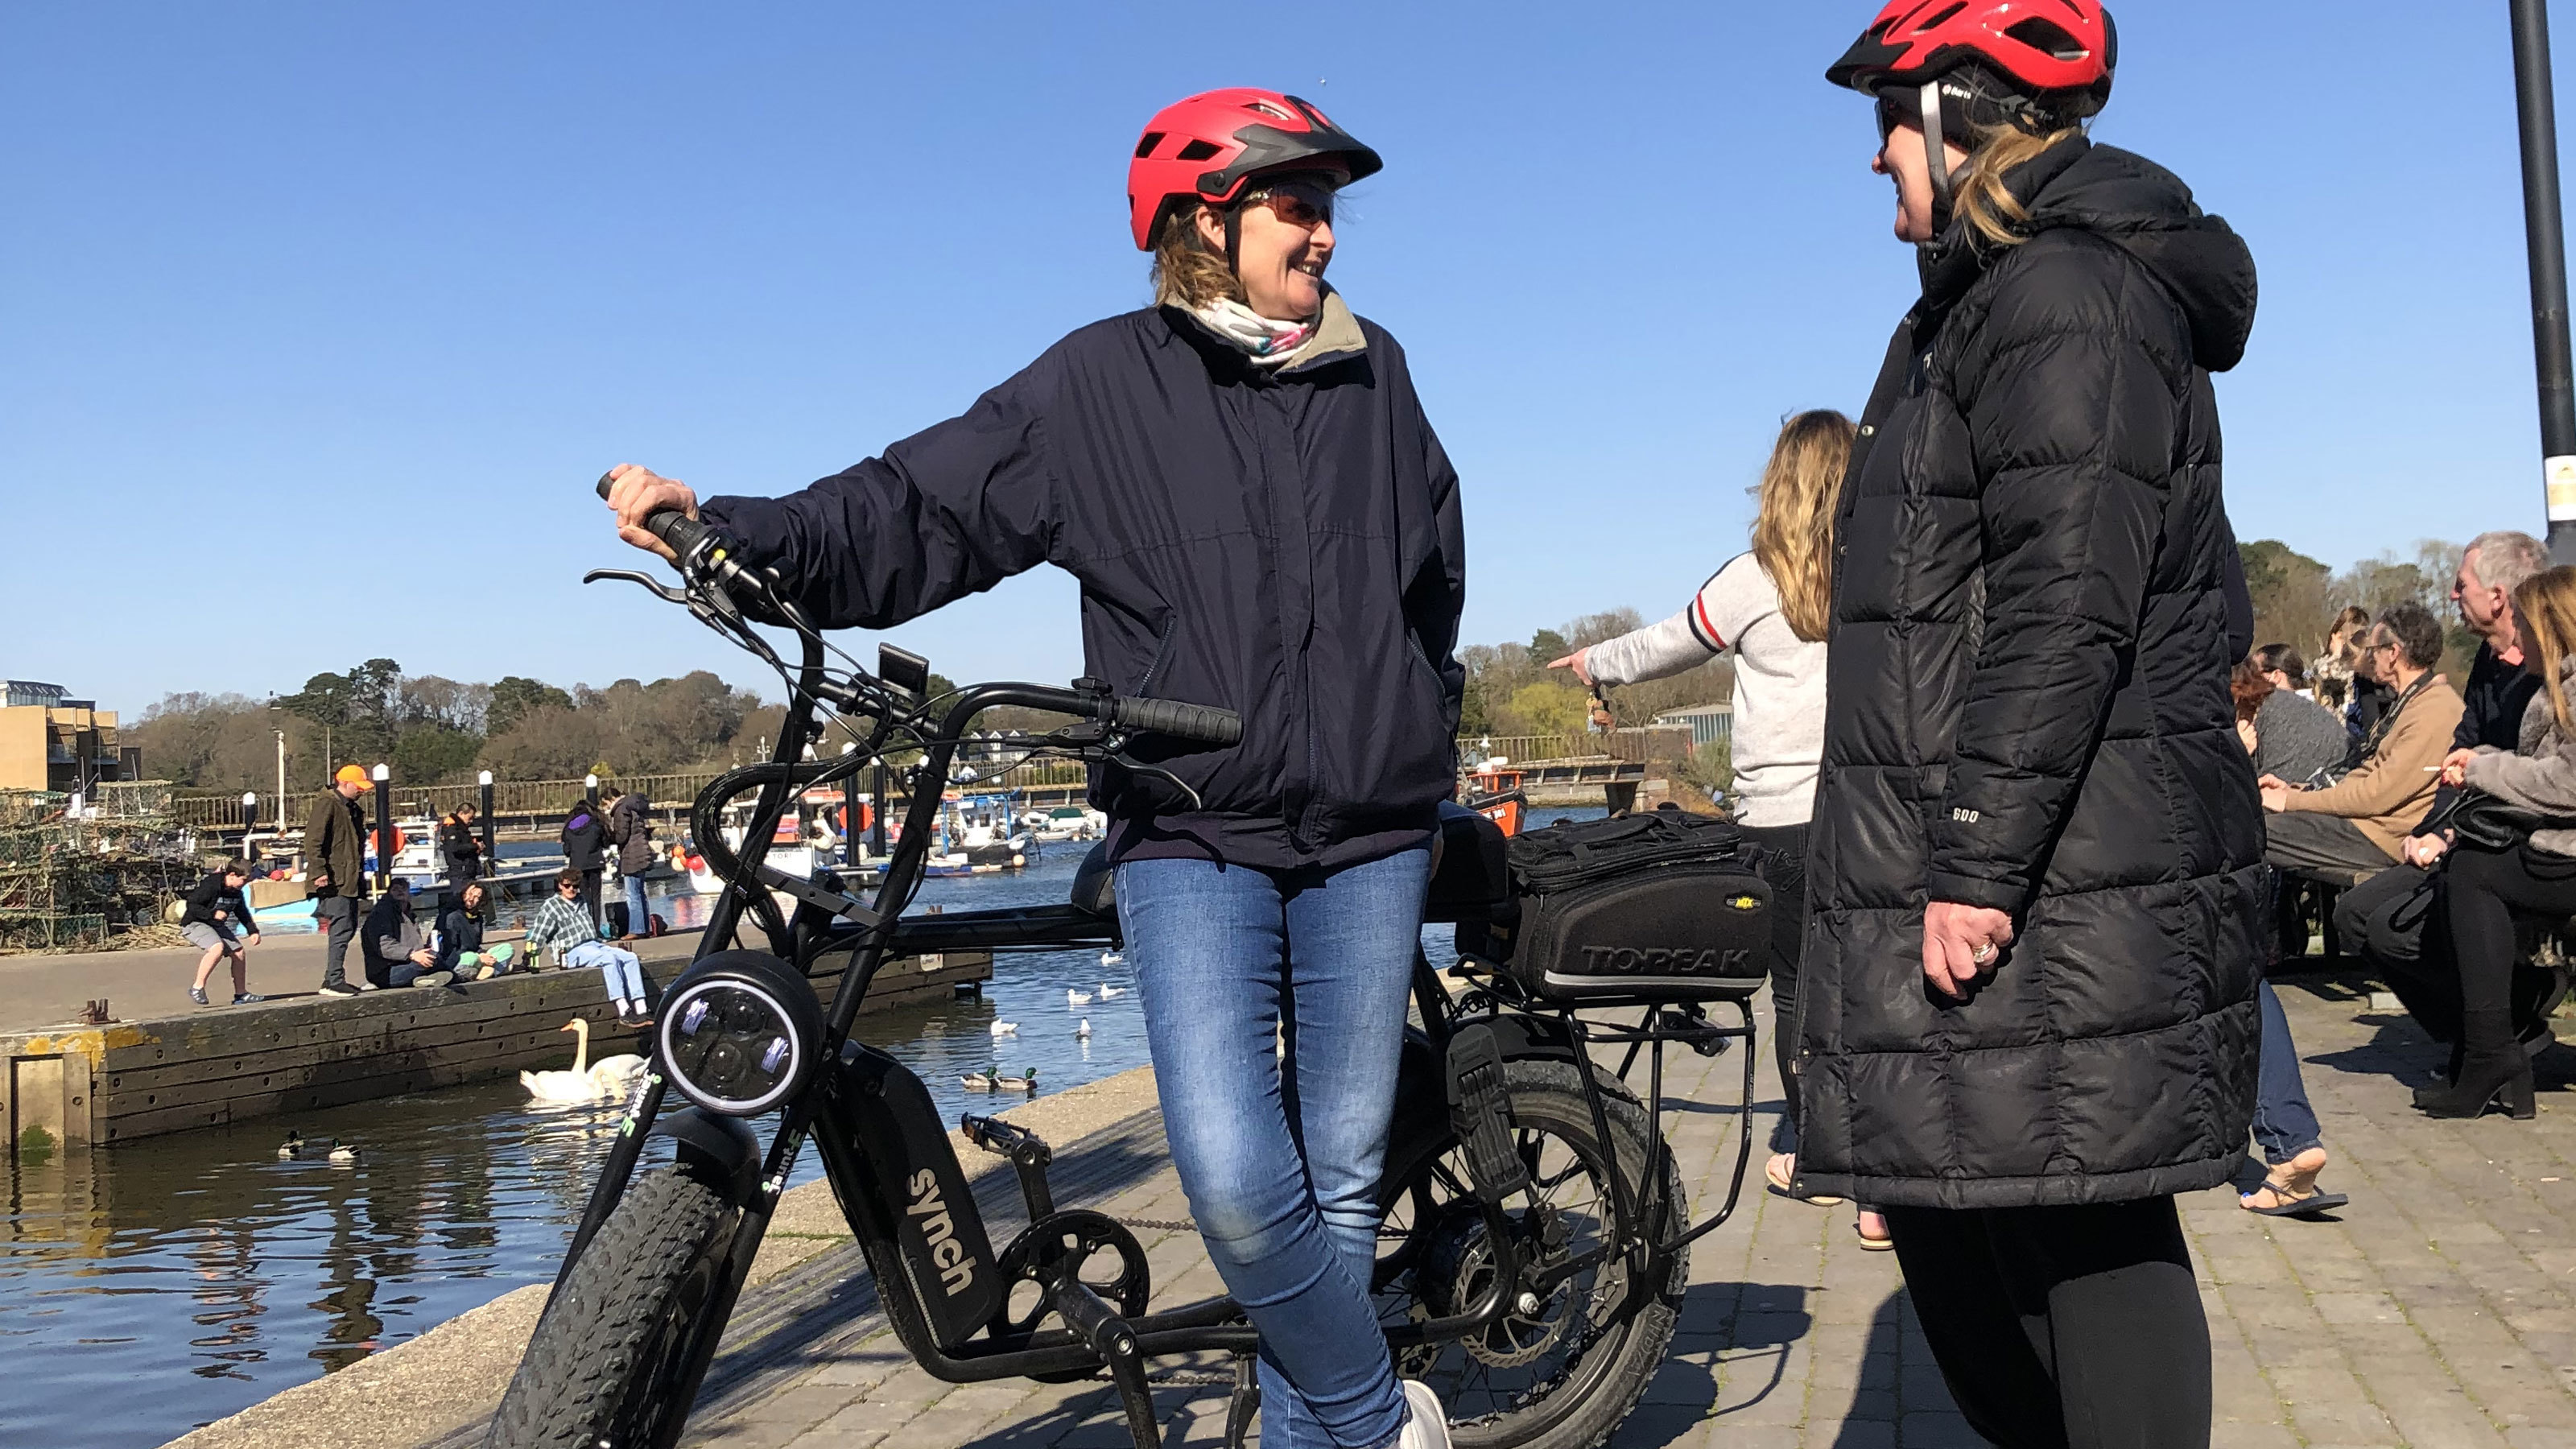 Jaunt e electric bikes out and about